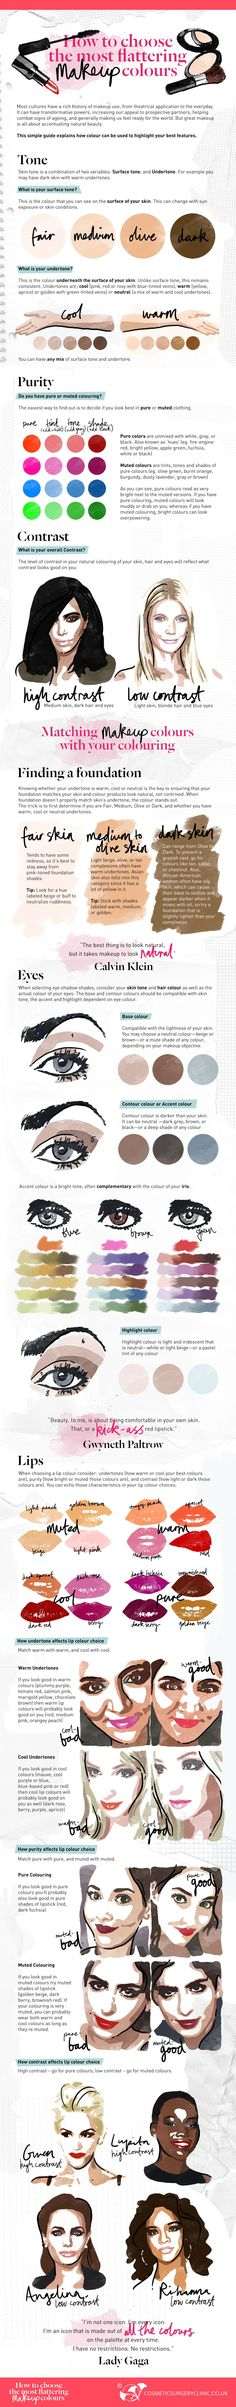 How To Choose the Most Flattering Makeup Colors #infographic #HowTo #Makeup…